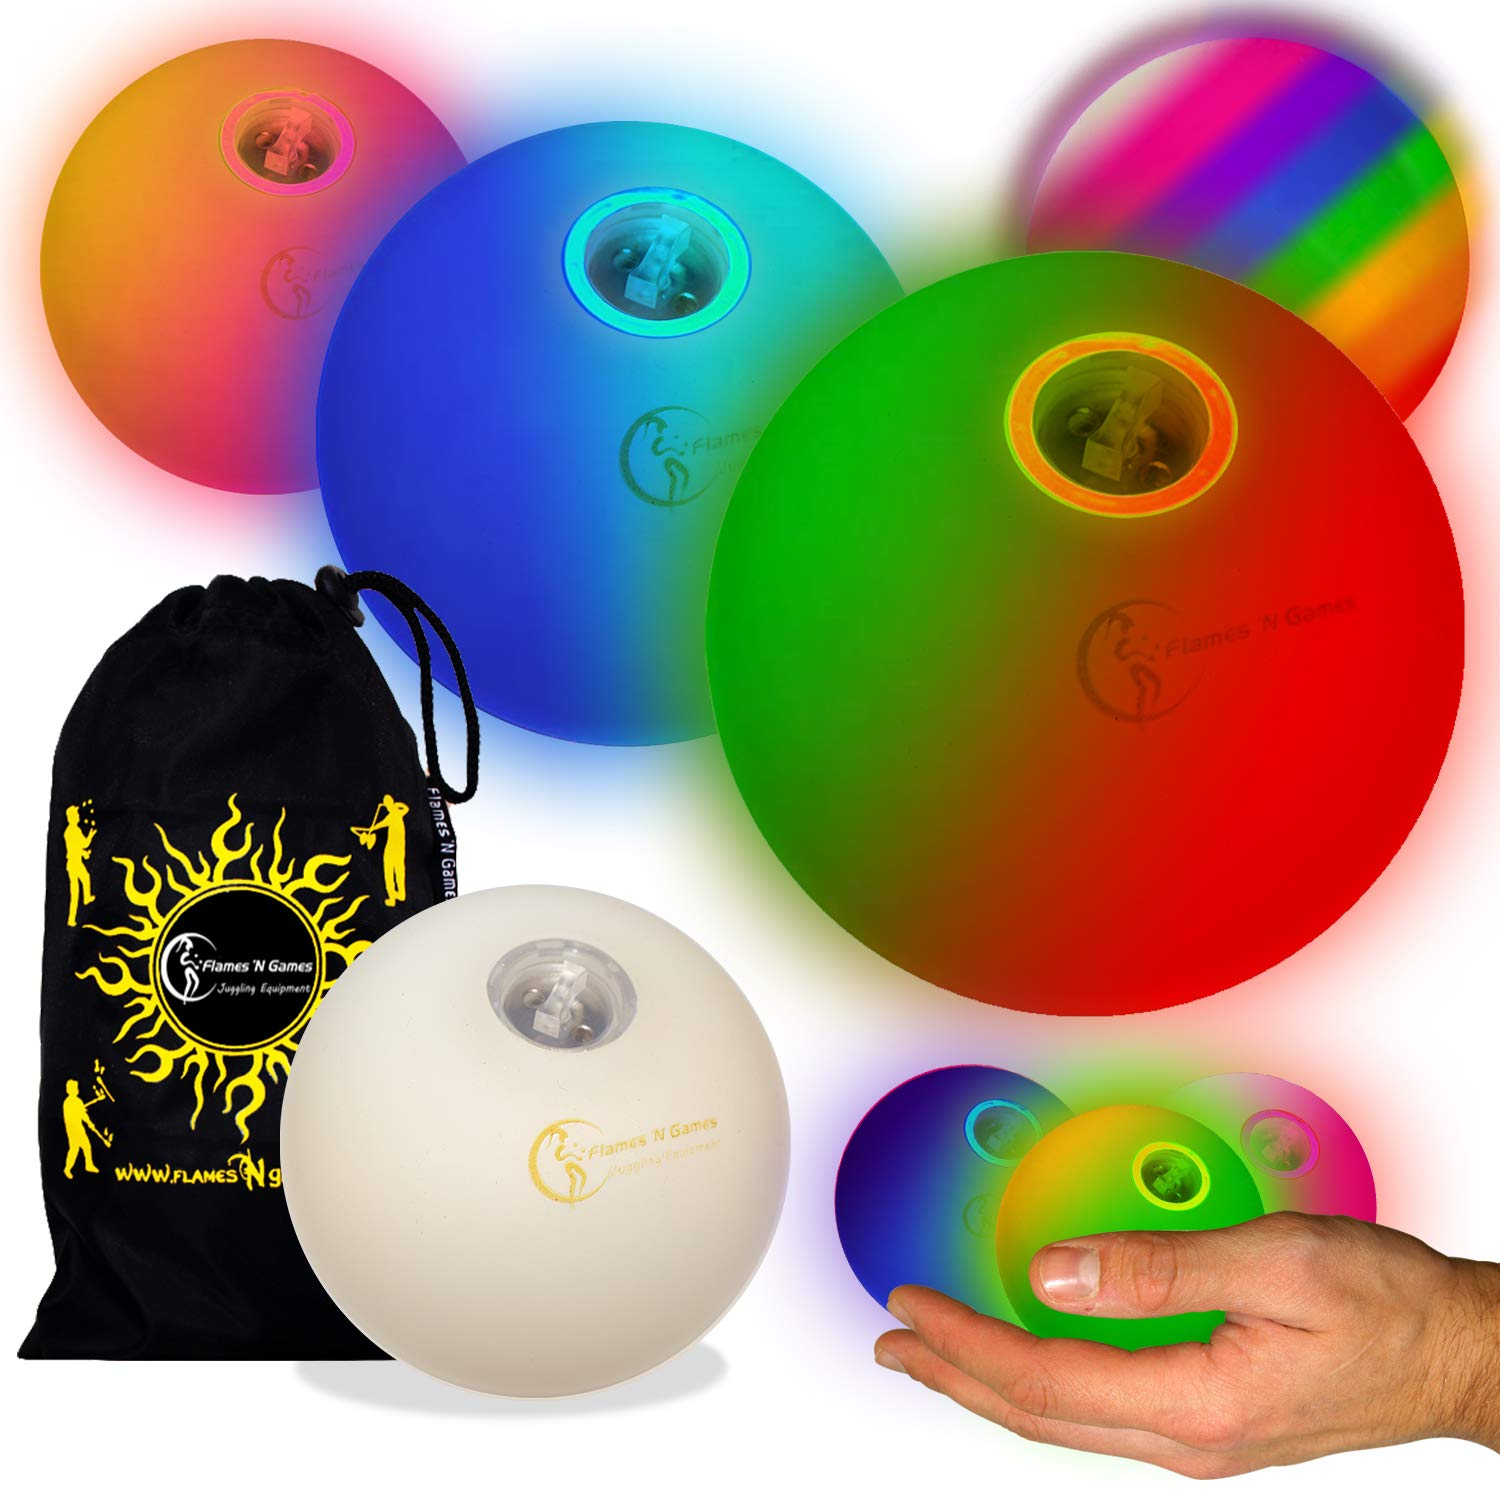 Flames N Games Pro LED Glow Juggling Balls 3X (Slow Fade Rainbow Effect) Ultra Bright Battery Powered Glow LED Juggling Ball Set with Travel Bag. (Set of 3) by Flames N Games Juggling Ball Sets